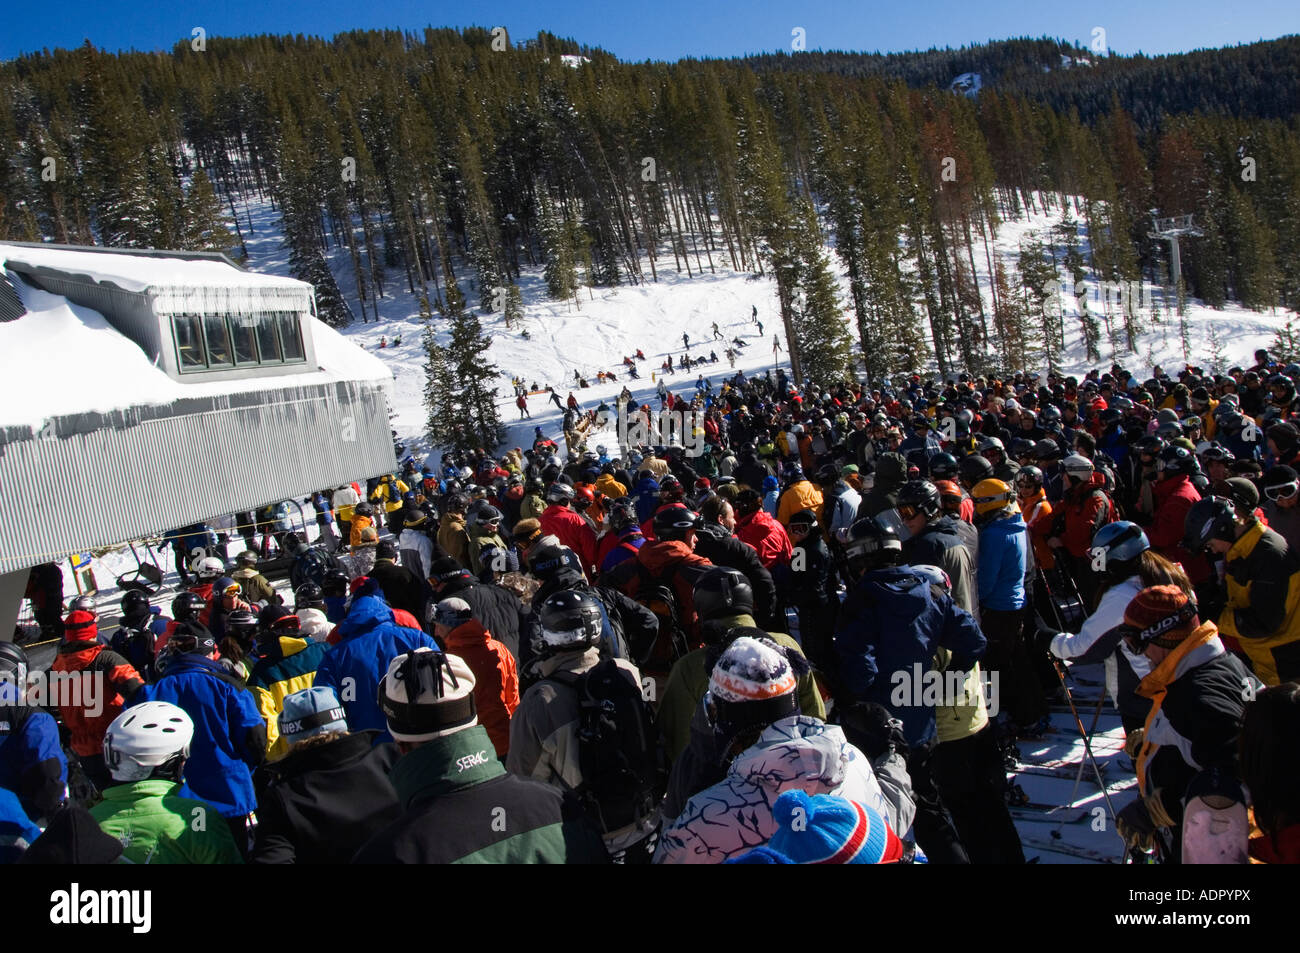 USA Colorado Vail Ski Resort Skiers waiting at a congested chair lift in Vail - Stock Image